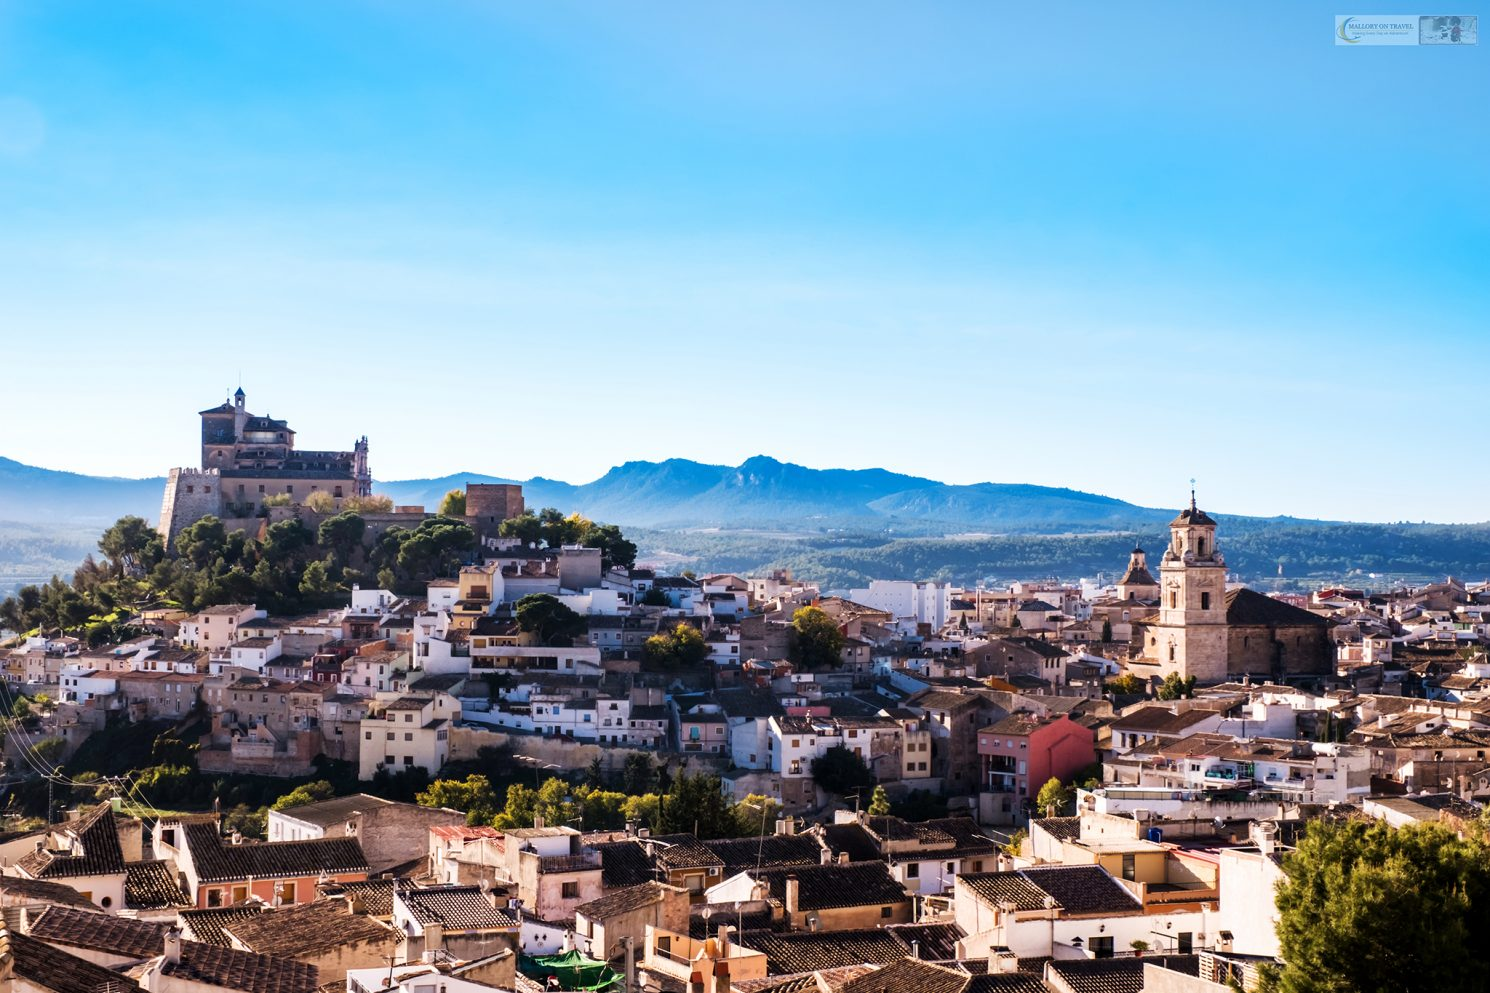 Real Alcázar and the Church of the Holy Conception in Caravaca de la Cruz in the region of Murica, Spain on Mallory on Travel adventure travel, photography, travel Iain Mallory_Murcia-1-44